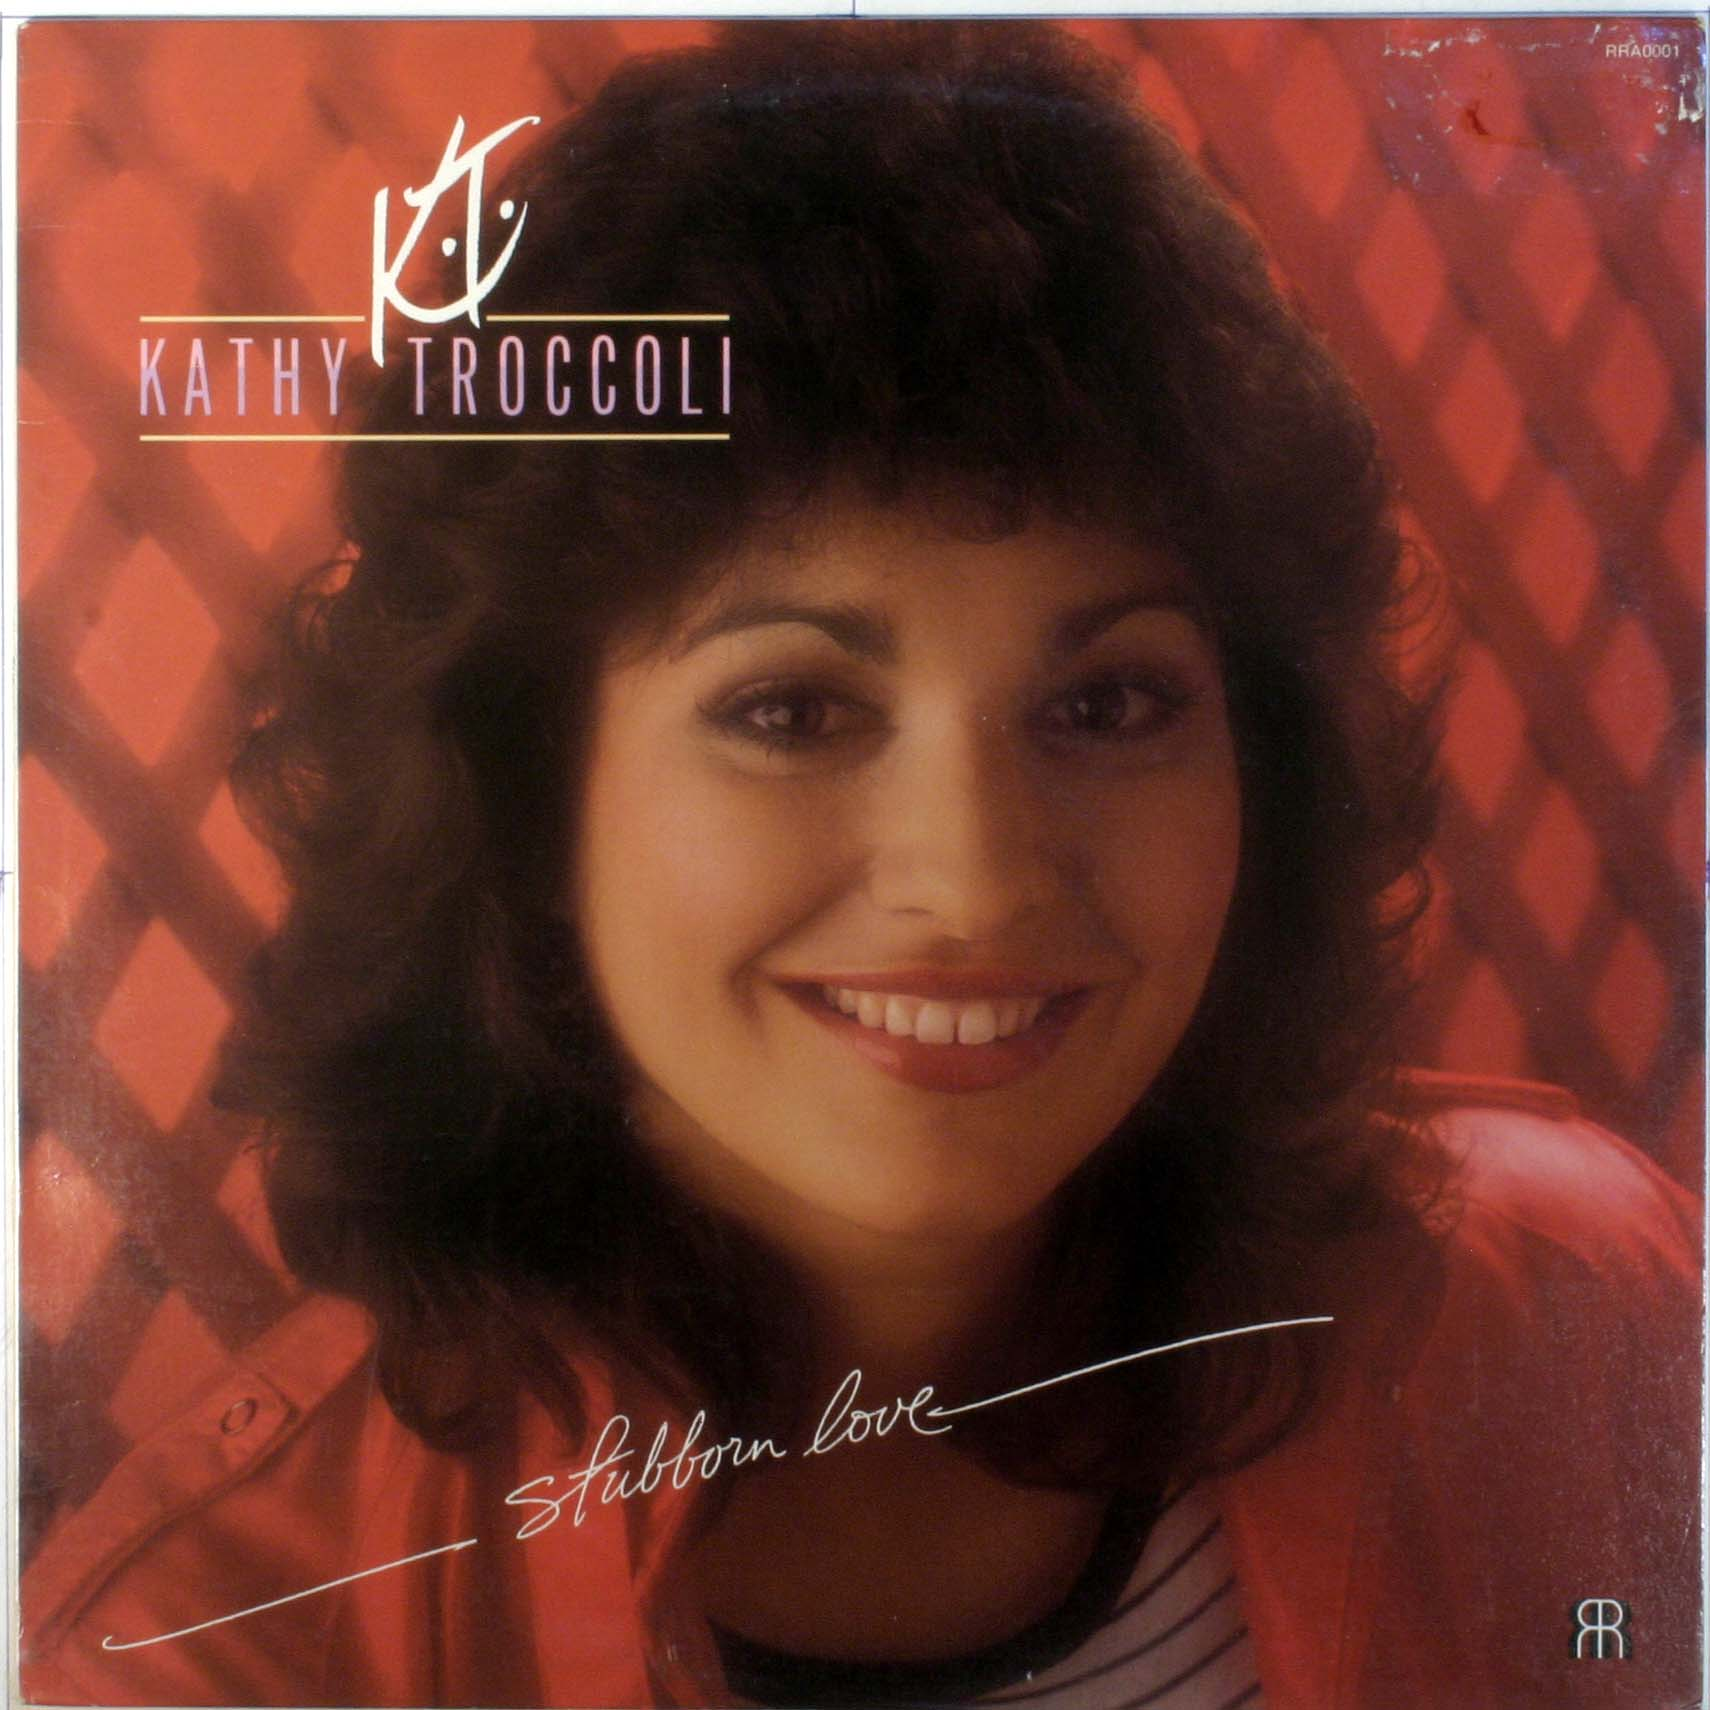 Kathy Troccoli - Stubborn Love Album